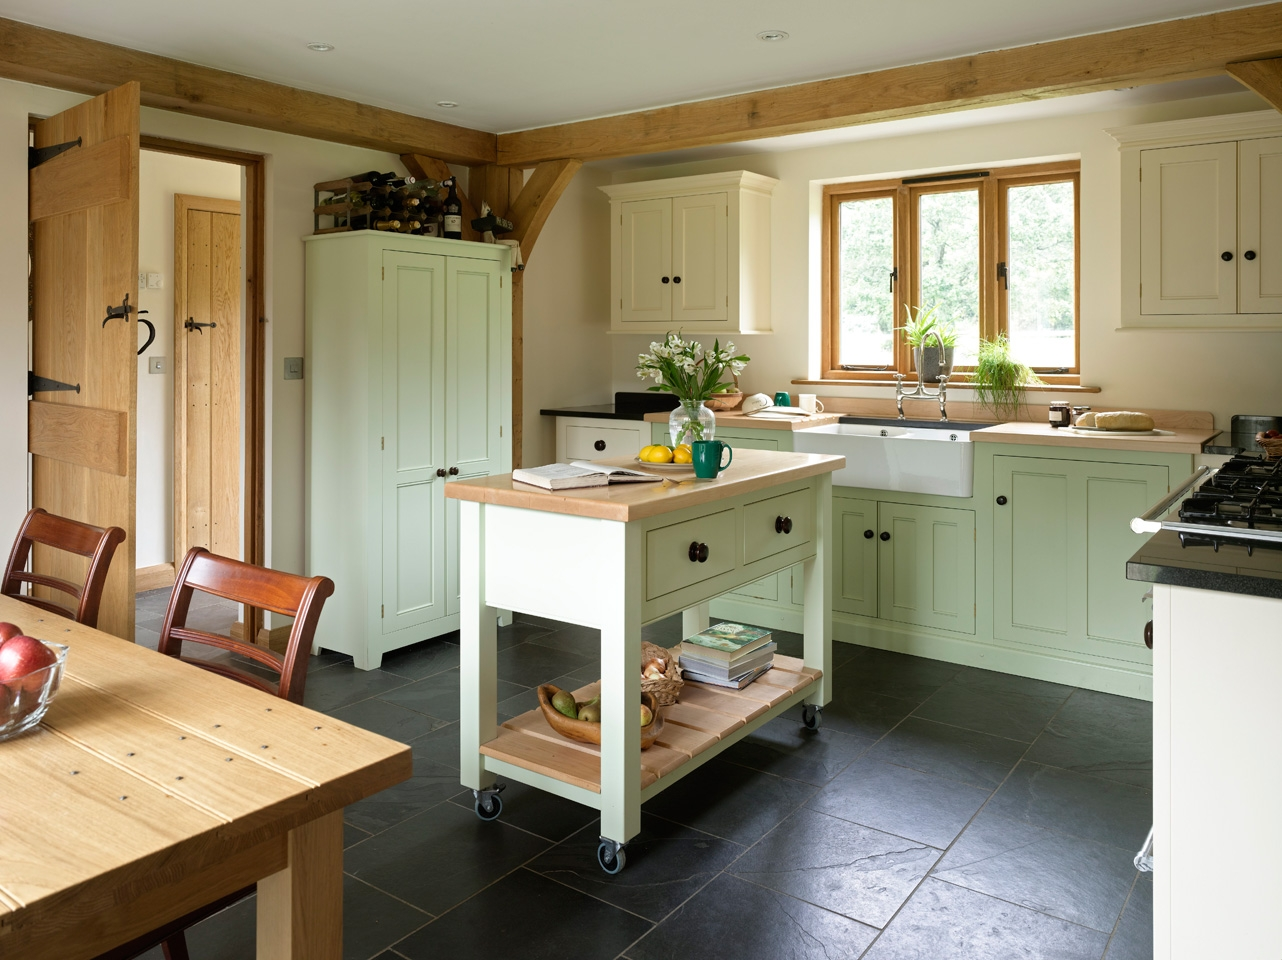 Oak Framed Kitchen Cabinetsfarmhouse border oak oak framed houses oak framed garages and